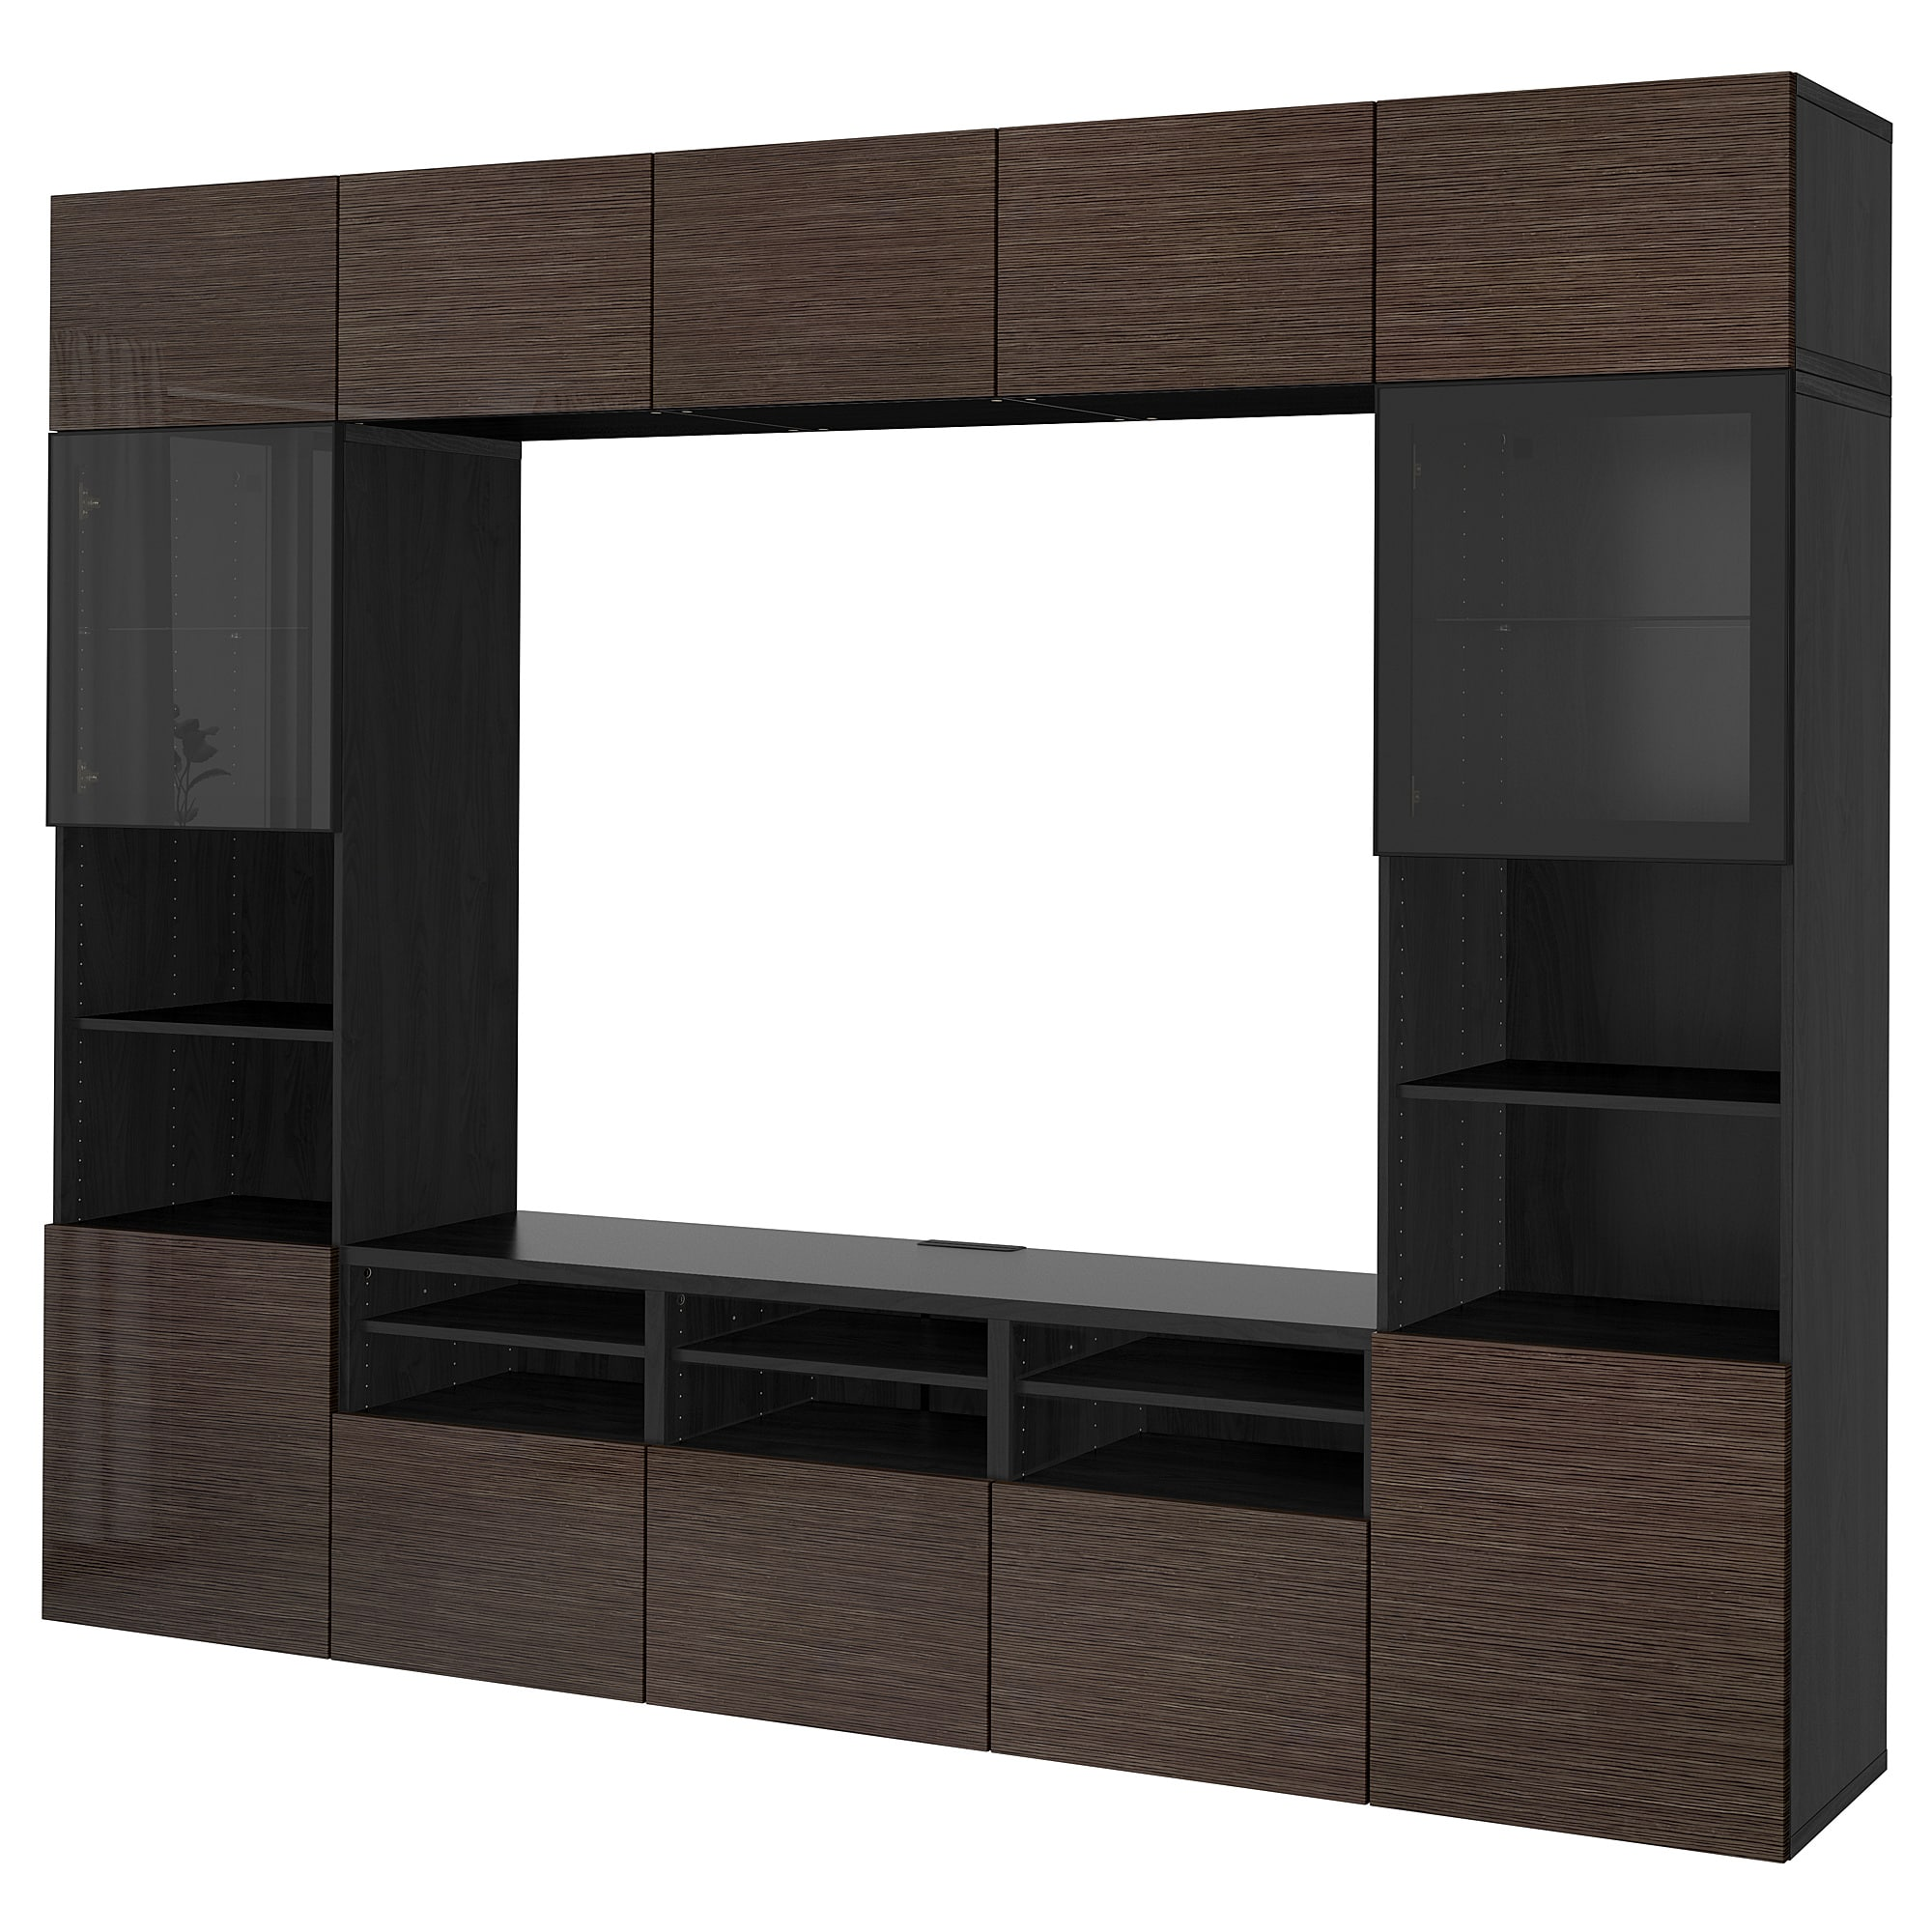 besta storage combination glass doors black brown selsviken floating drawer shelf high gloss white clear wall shelves media unit plugs narrow invisible clothes hanger the shaped